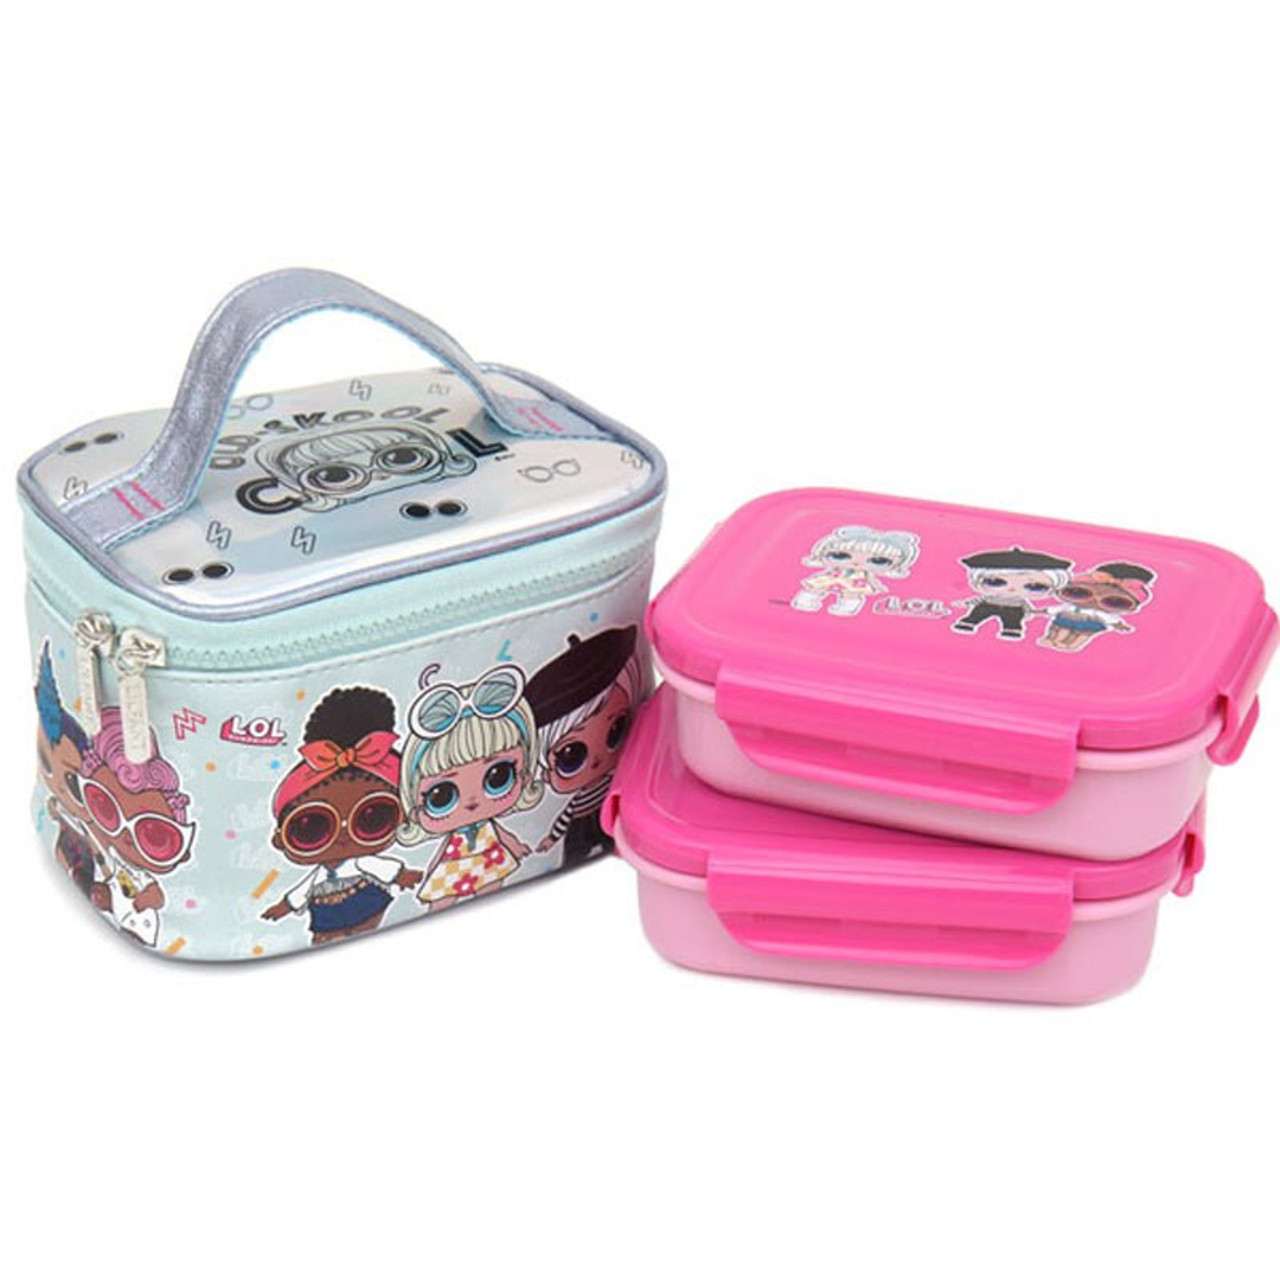 L.O.L SURPRISE STAINLESS STEEL LUNCH BOX